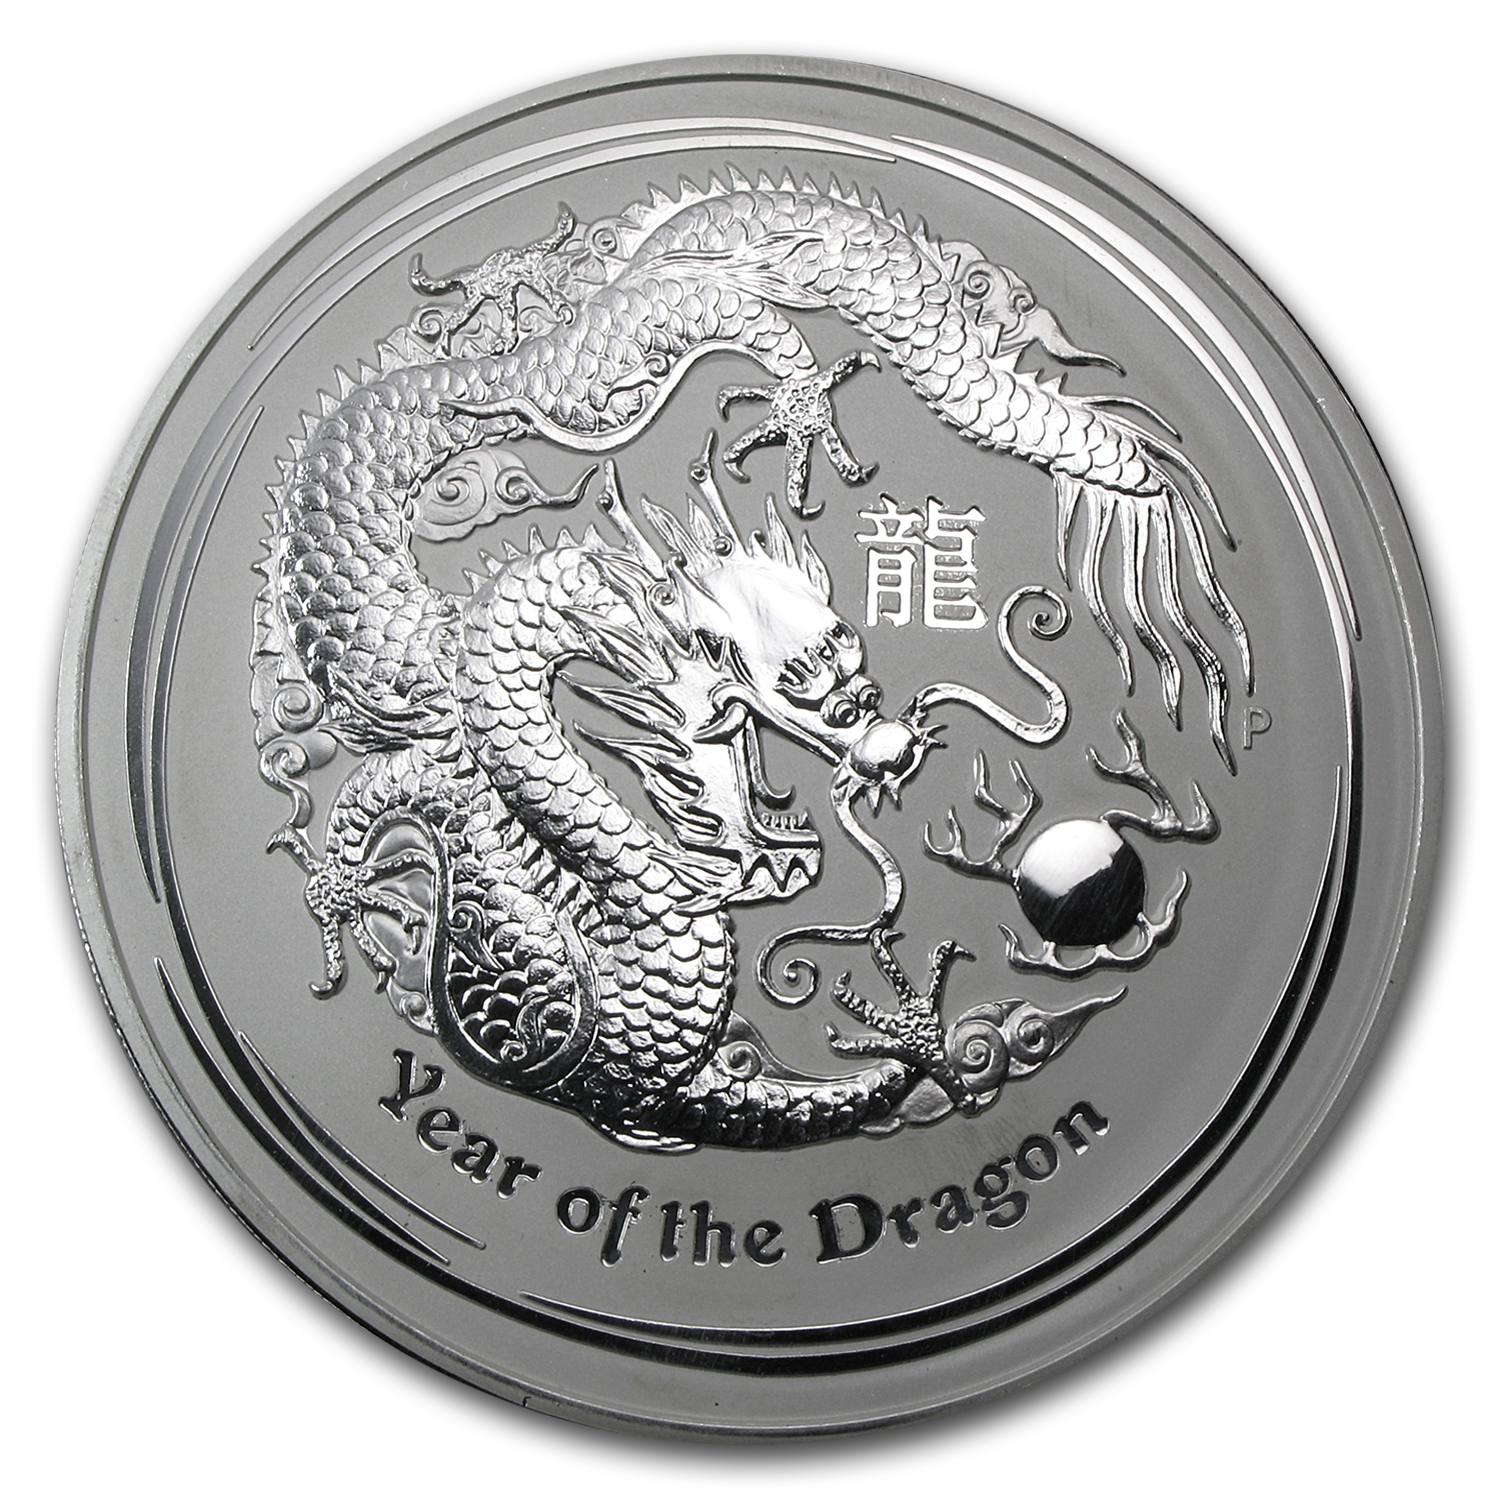 2012 1 Kilo 32.15 oz Silver Australian Year of the Dragon